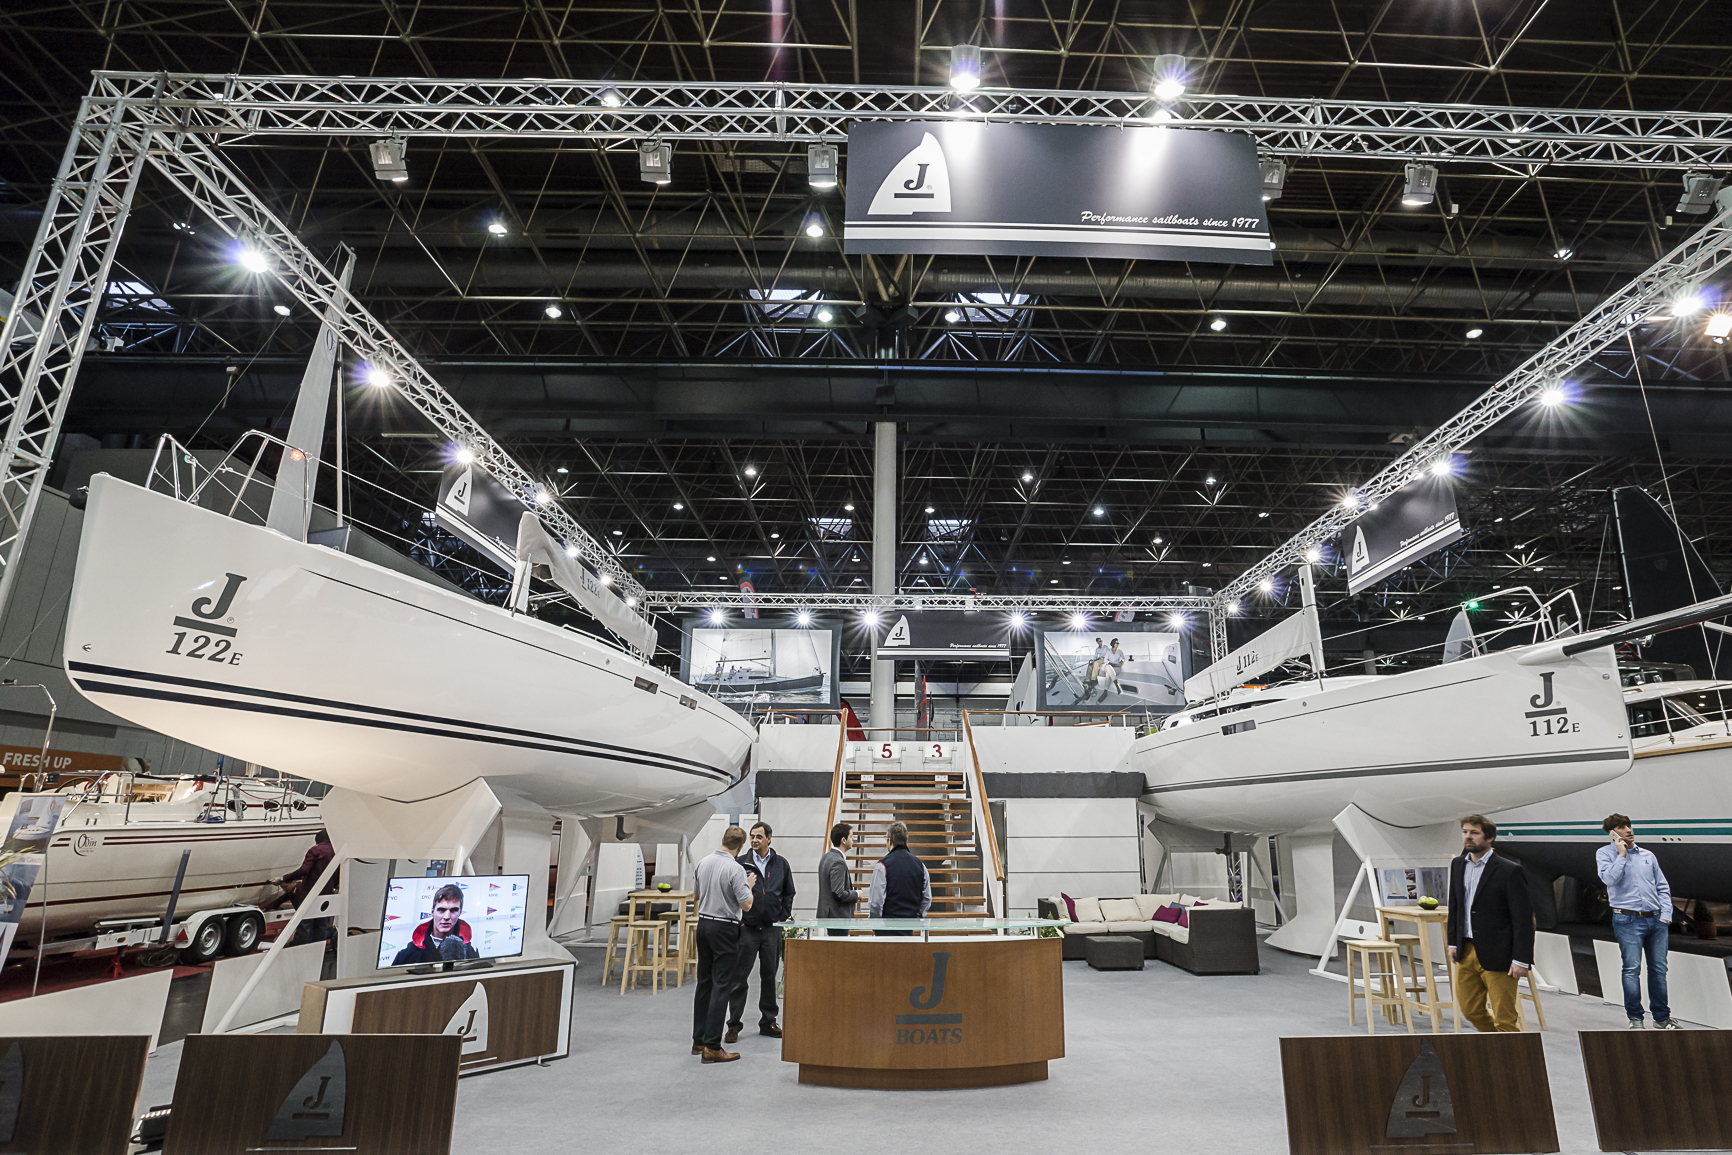 J/112E and J/122E at Dusseldorf Boot Boat show